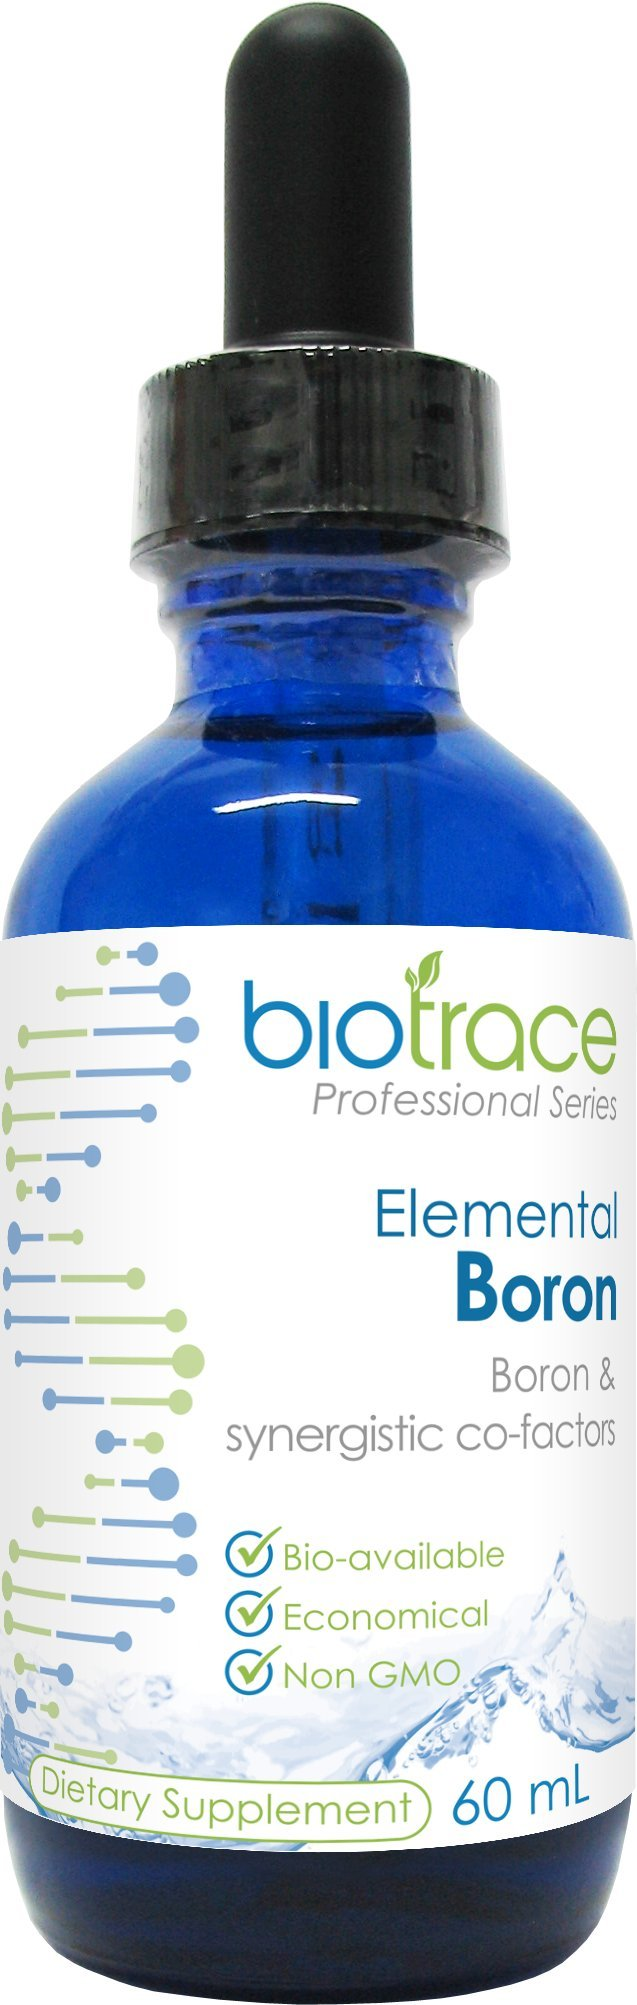 Boron Supplement Liquid Concentrated with 72 Trace Minerals Ionic Drops ( BioTrace Elemental Boron ) for 60-day Supply in 2.03 Fl Oz Small Travel Size